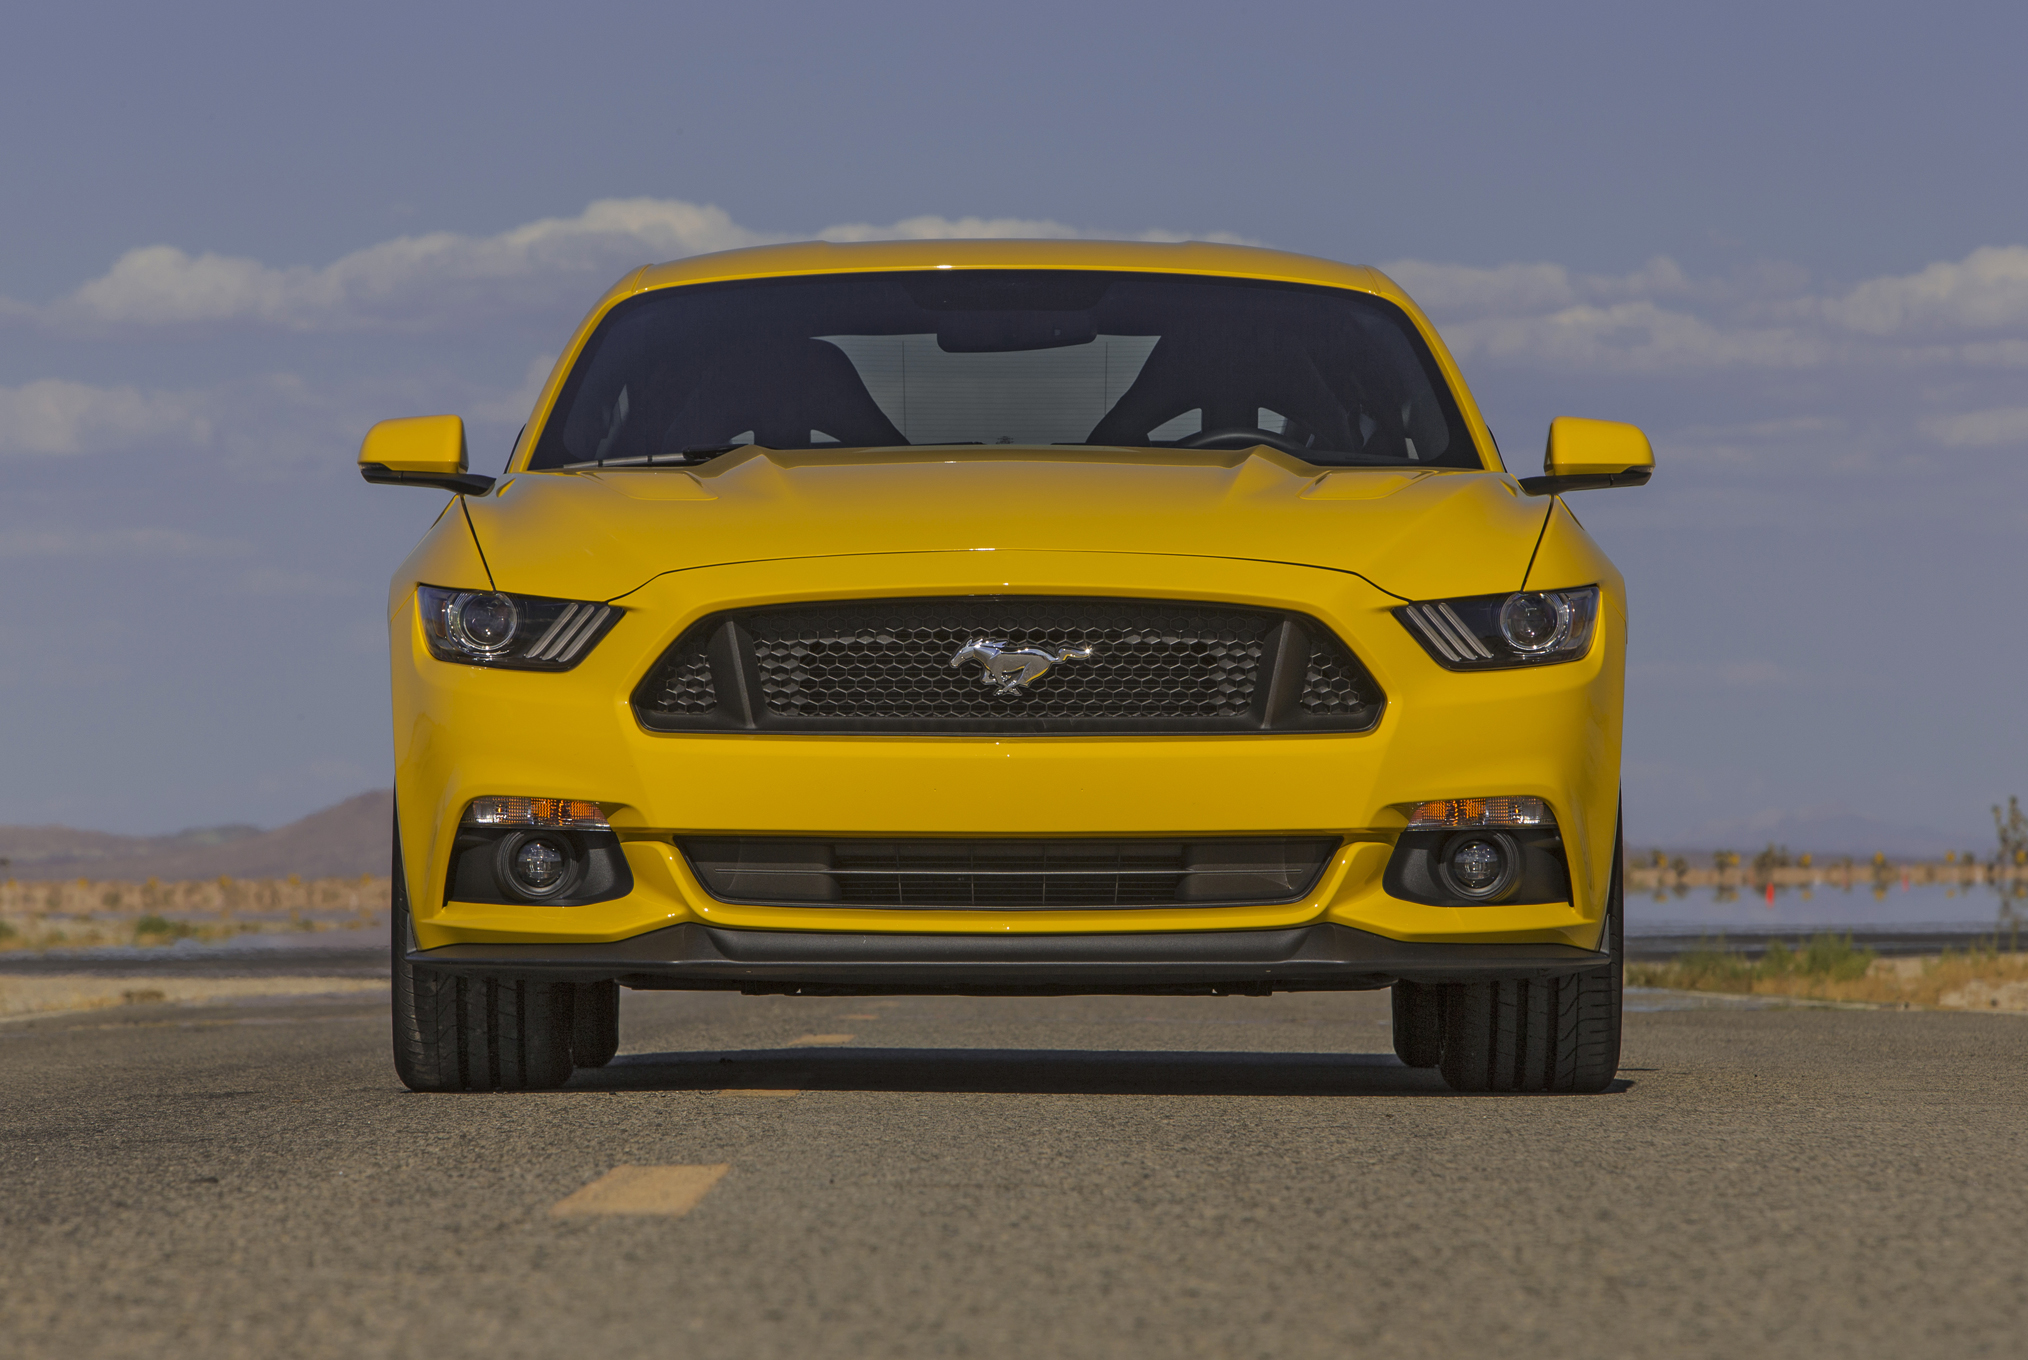 2015 Ford Mustang Gt Front Exterior Design (Photo 10 of 30)